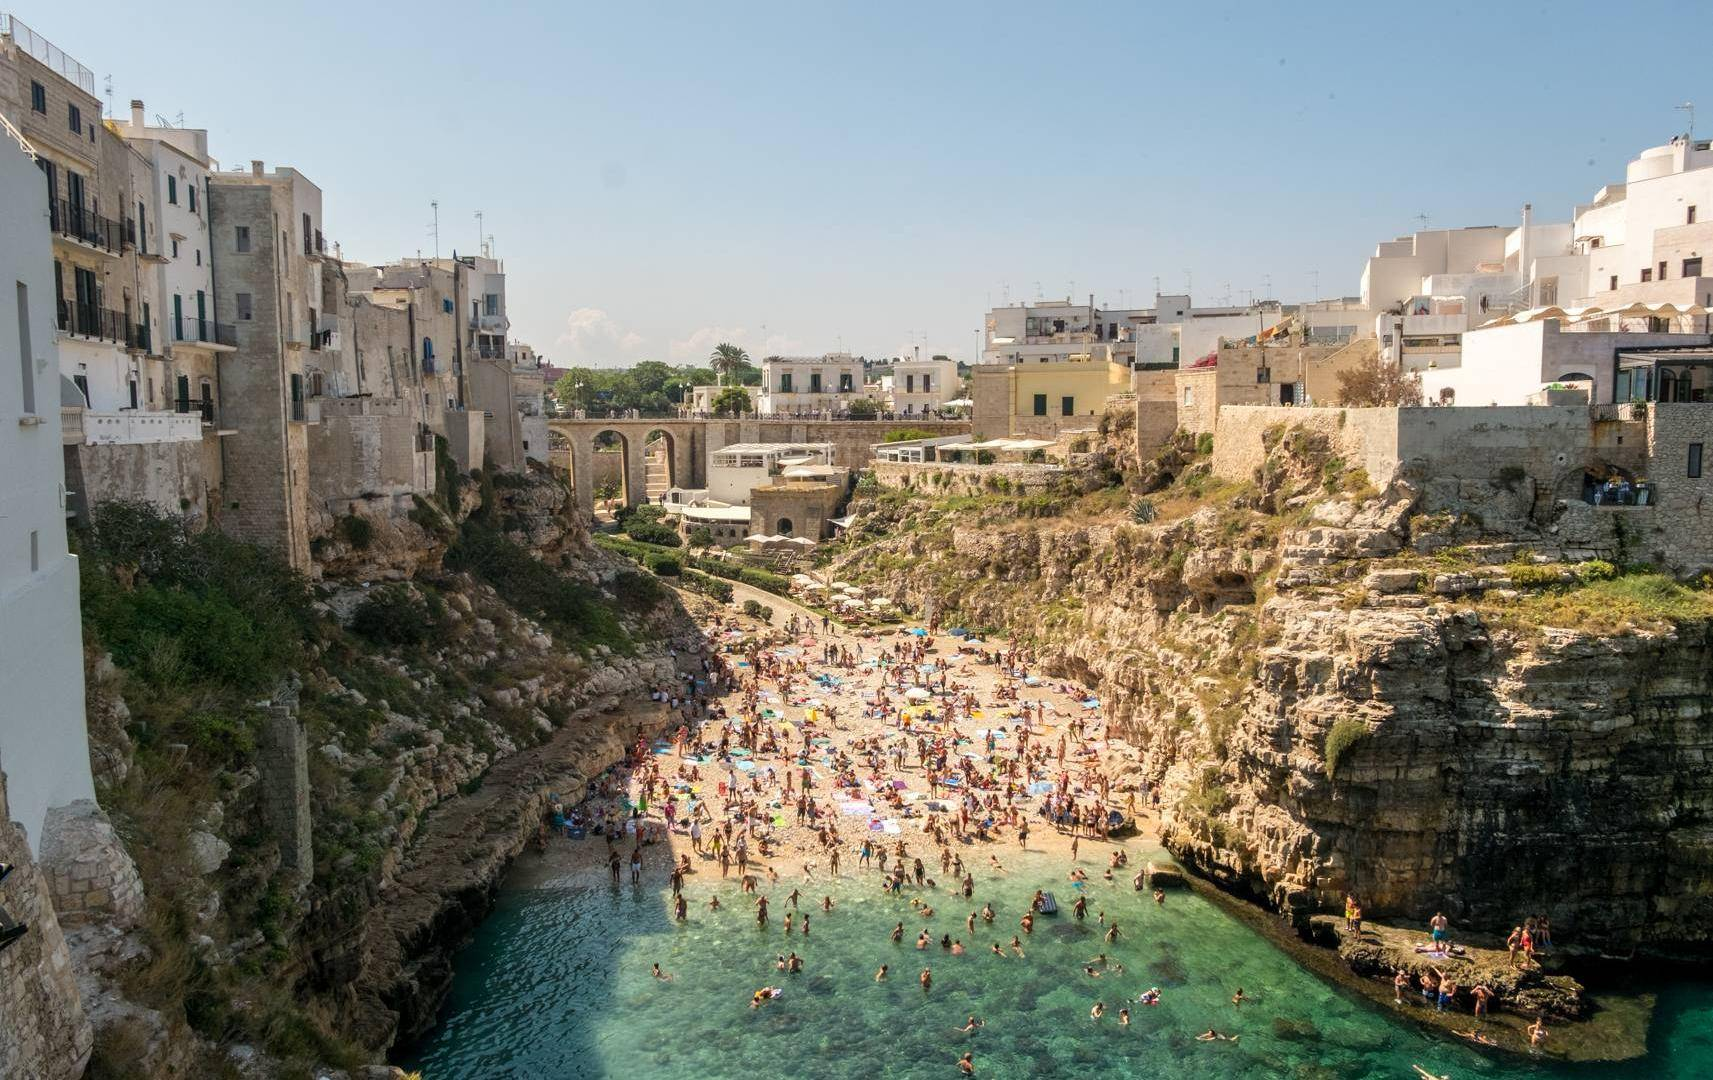 Why visit Puglia? We can think of at least 15 reasons…